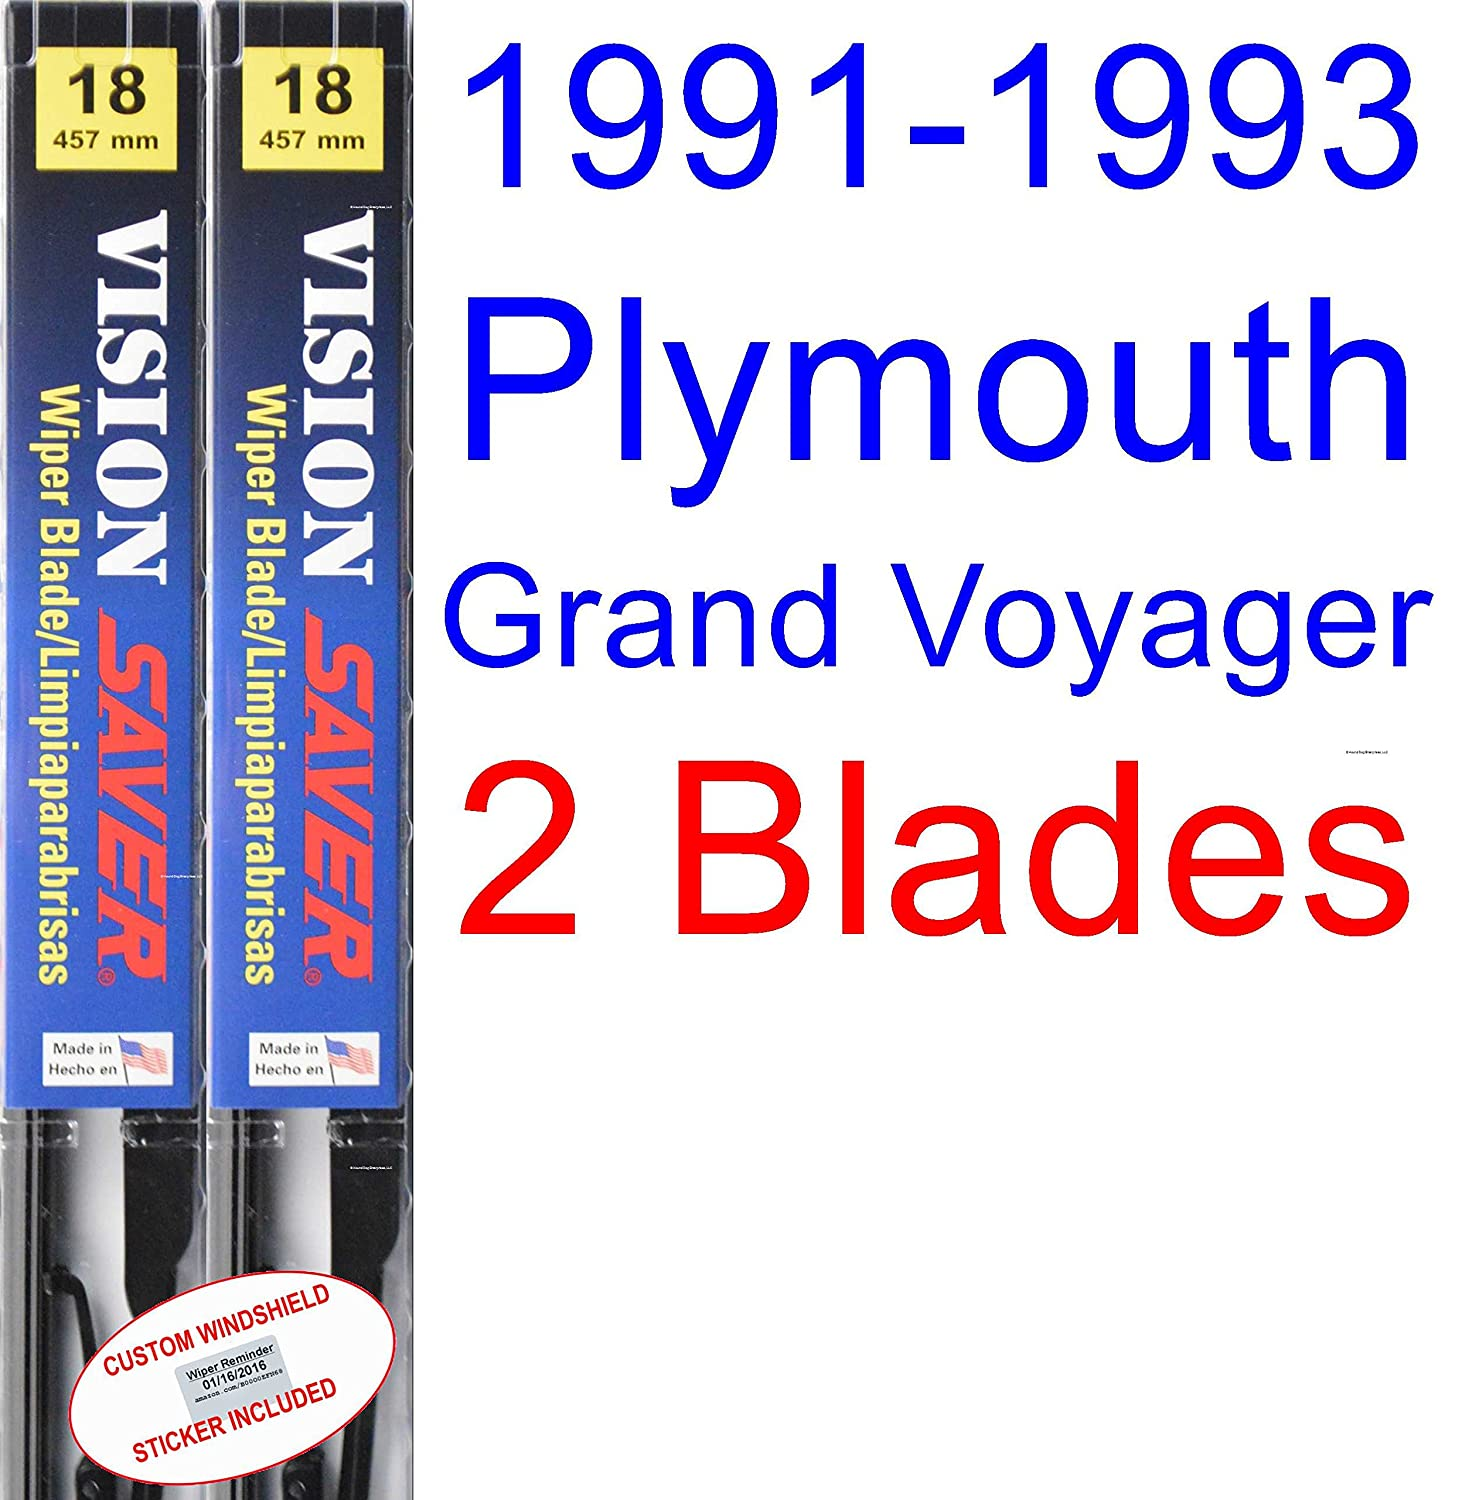 Amazon.com: 1991-1993 Plymouth Grand Voyager Wiper Blade (Rear) (Saver Automotive Products-Vision Saver) (1992): Automotive